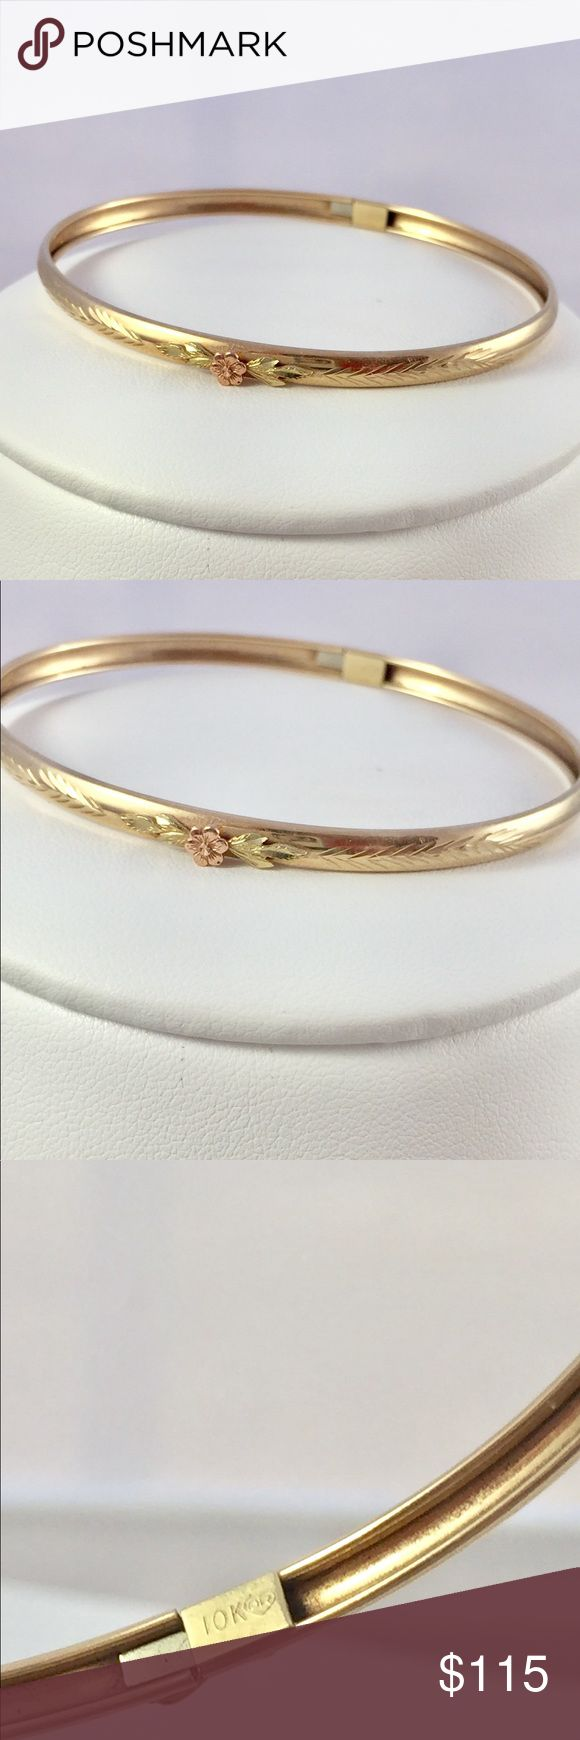 NWT 10kt gold bangle rose gold flower & engraving Brand new with tags 10 kt yellow gold bangle with rose gold flower motif and engraving. Well made piece and it does not flex. The ends of the bracelet twist slightly to allow you to put it on your wrist. Very classic style and will always be fashionable. Secure clasp slides in and has a locking hinged clasp.  Price is firm and what a steal. The perimeter (length) of the bracelet is 7.5 Fine Jewelry Jewelry Bracelets